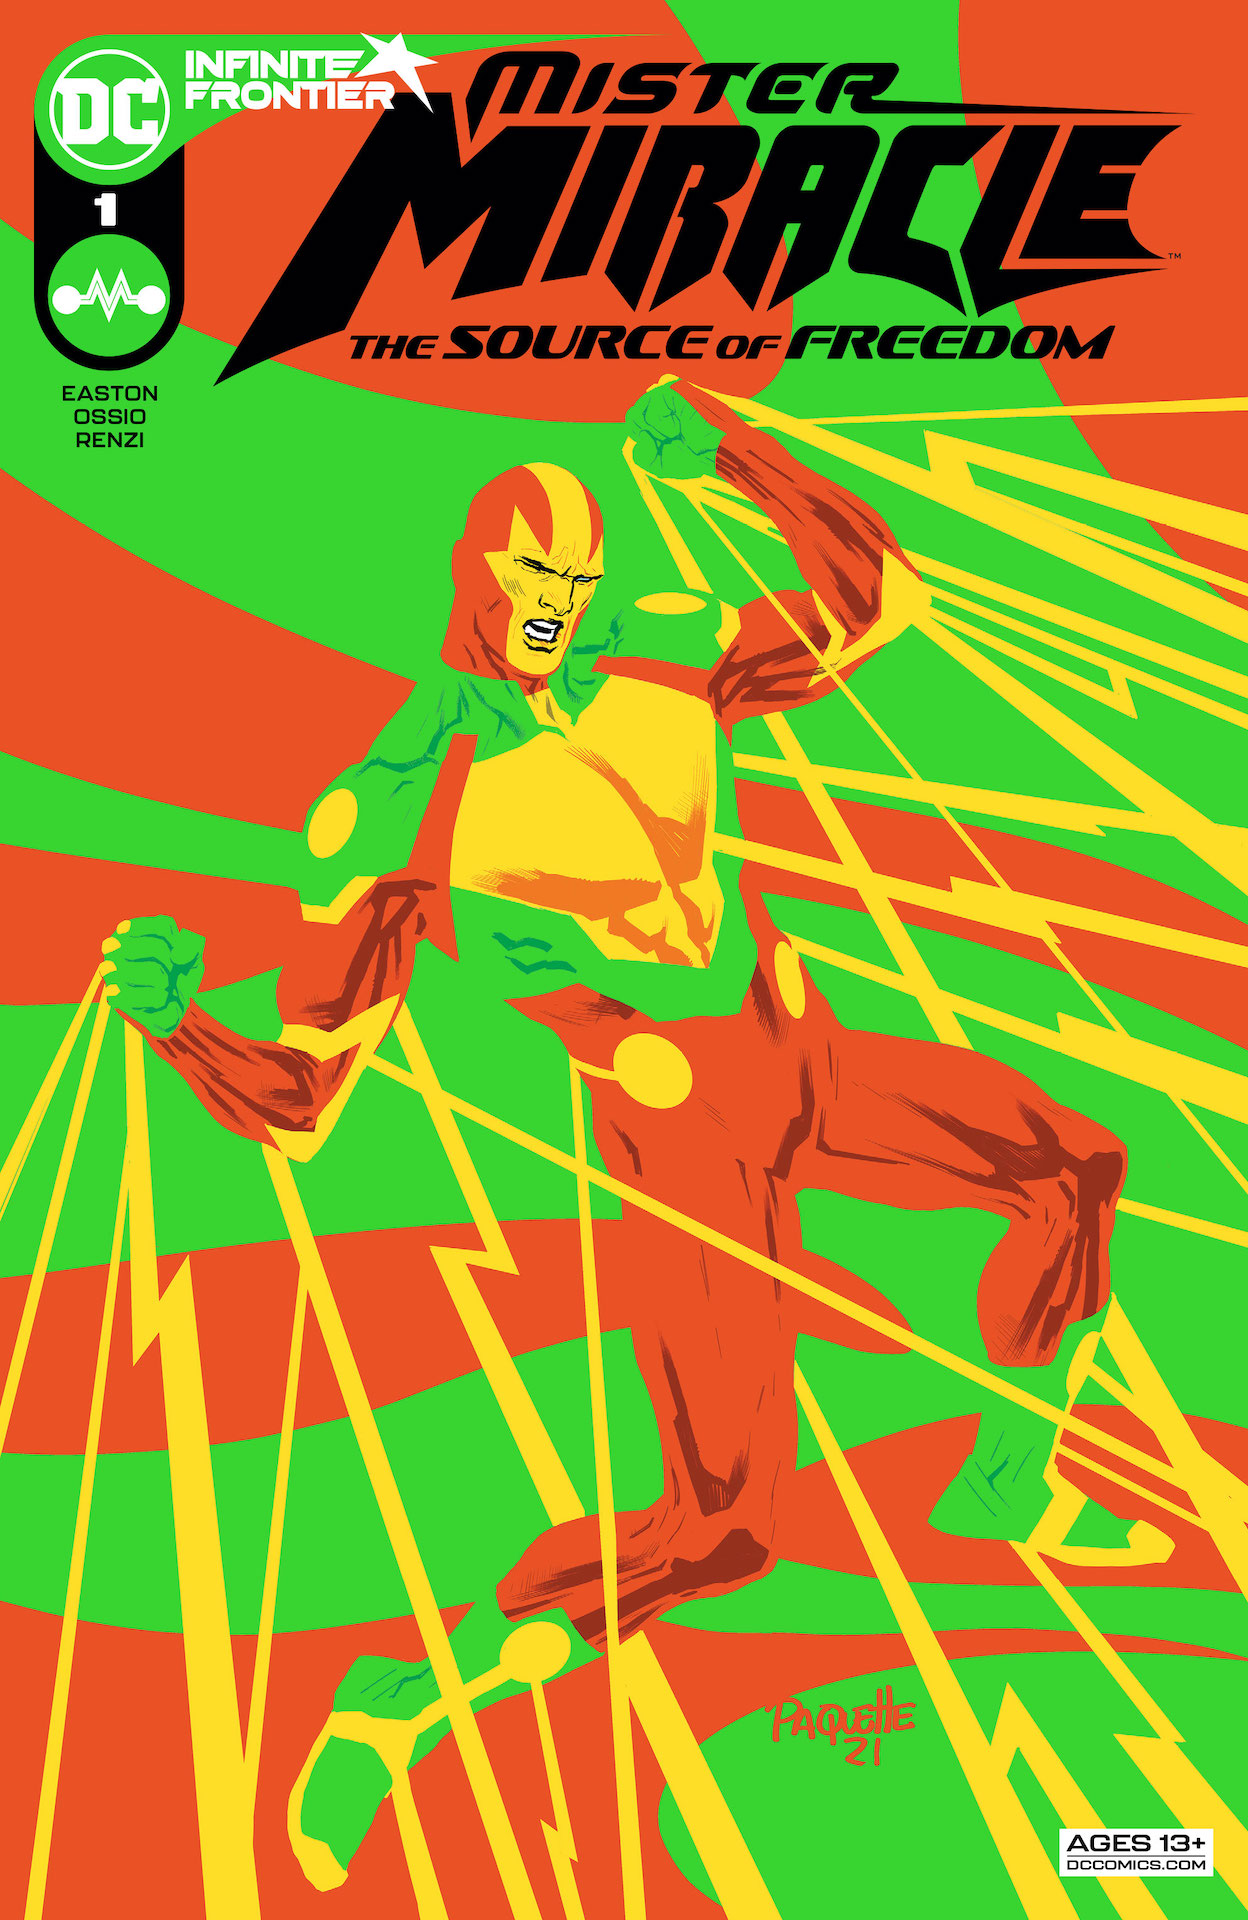 DC Preview: Mister Miracle: The Source of Freedom #1